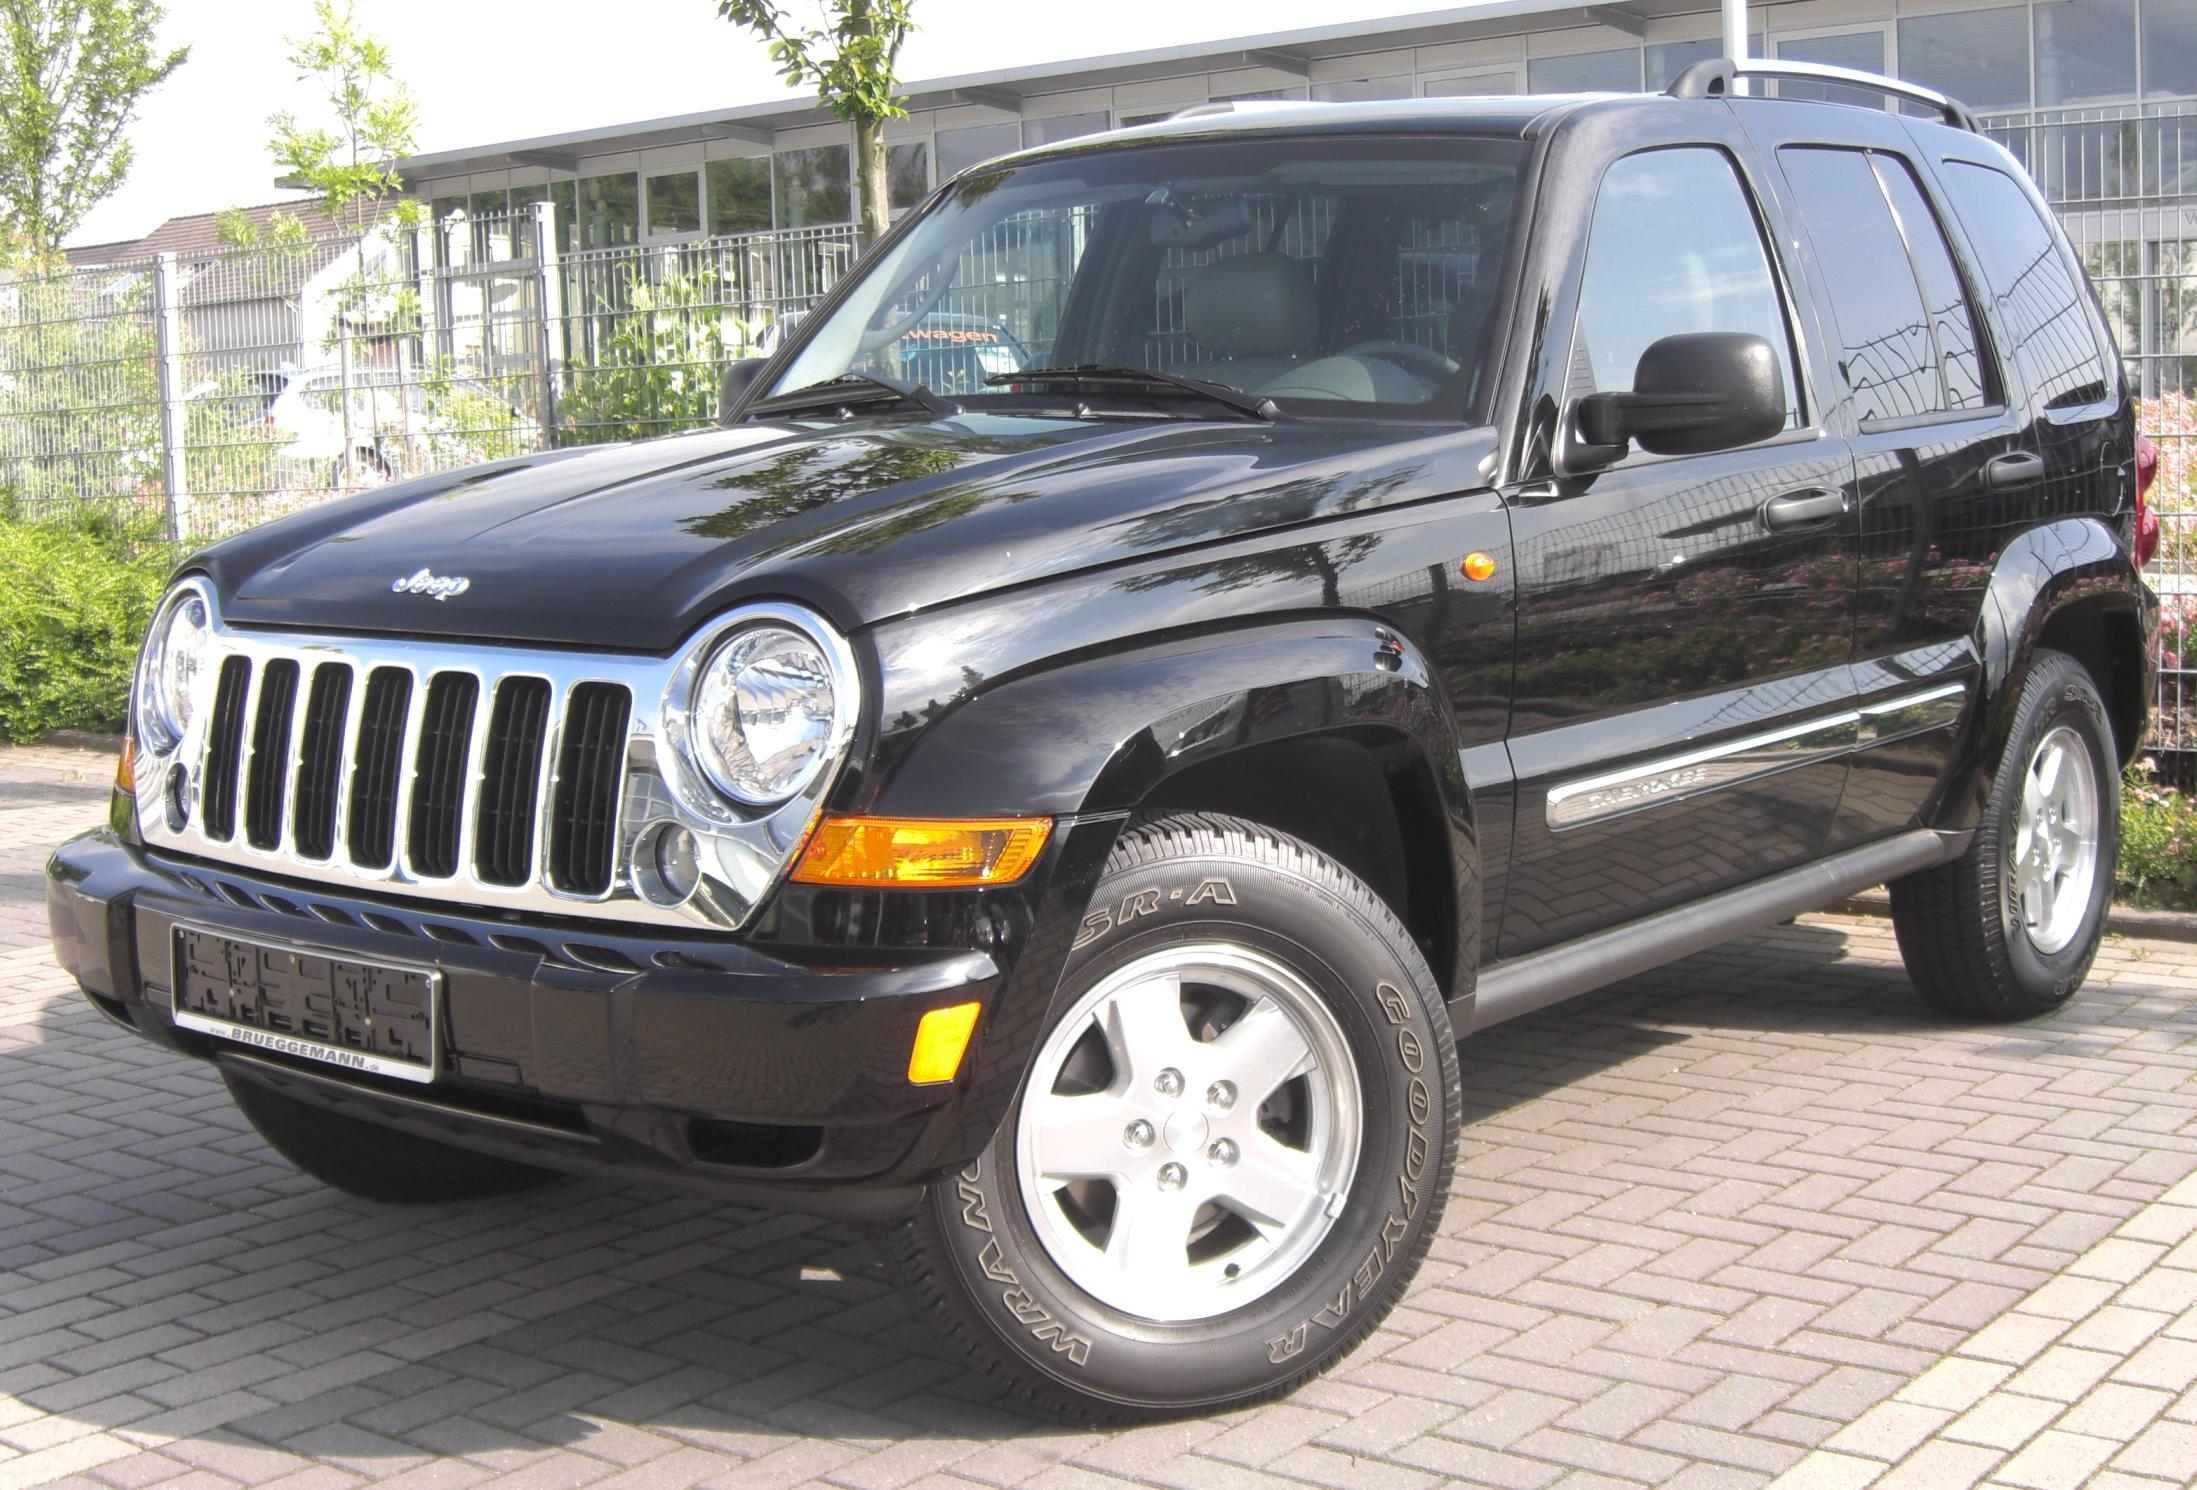 file:jeep cherokee front (2008) - wikimedia commons